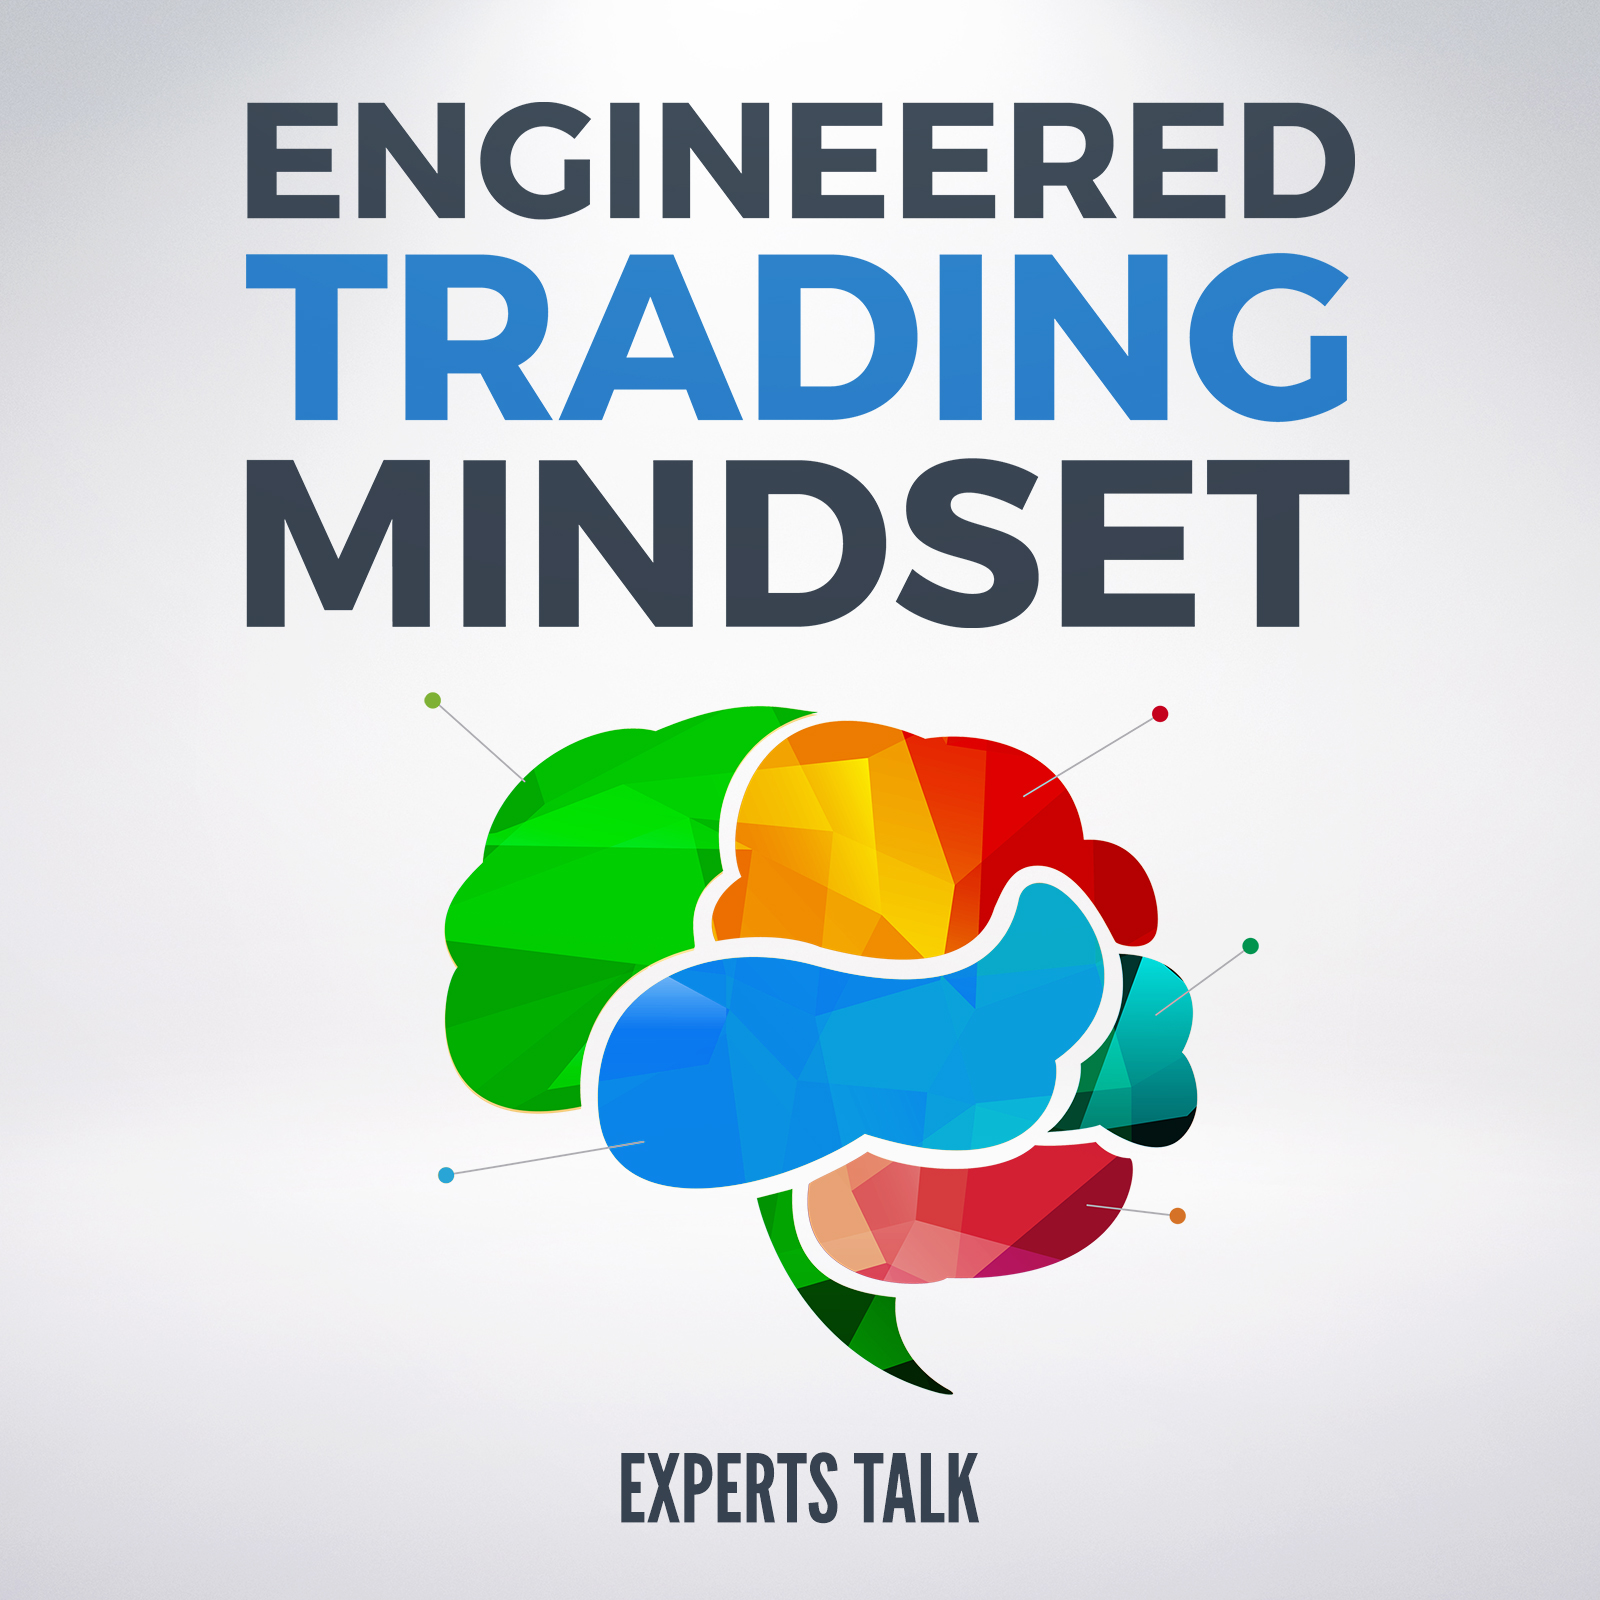 Engineered Trading Mindset: Experts Talk